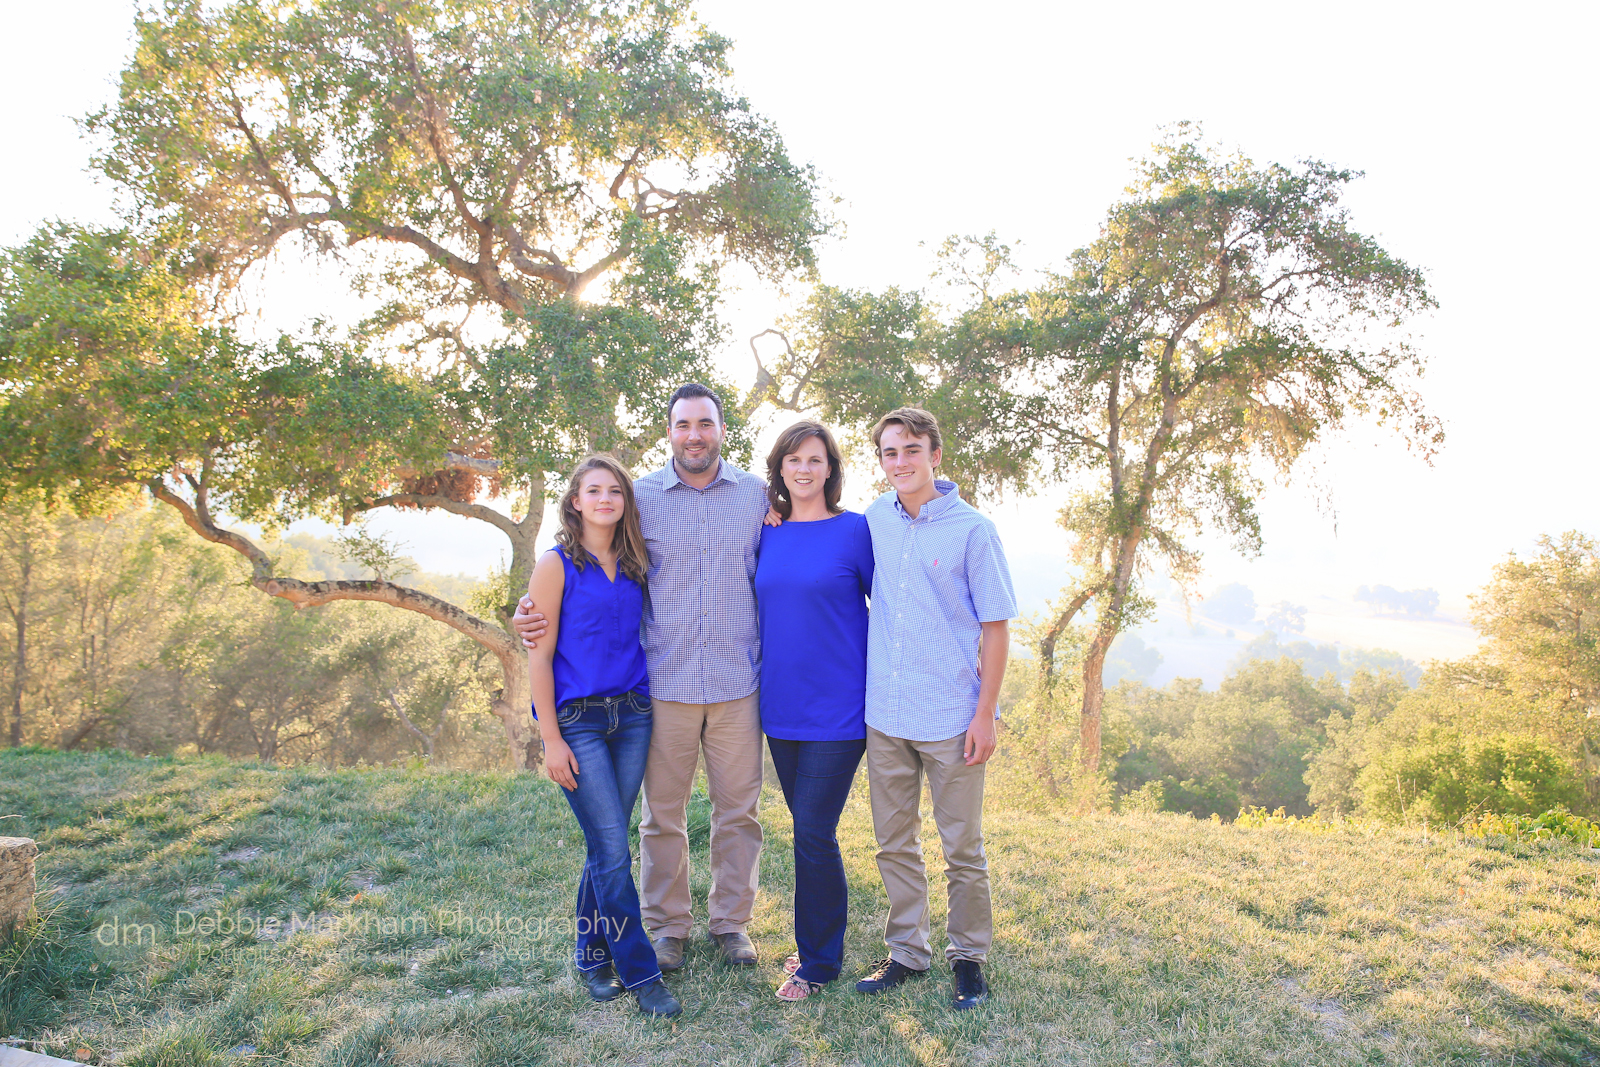 family-portrait_family-photographer_california_san-luis-obispo_cambria_photographer_templeton_holiday-card_fun-family_photos_photographer_debbie-markham-1264